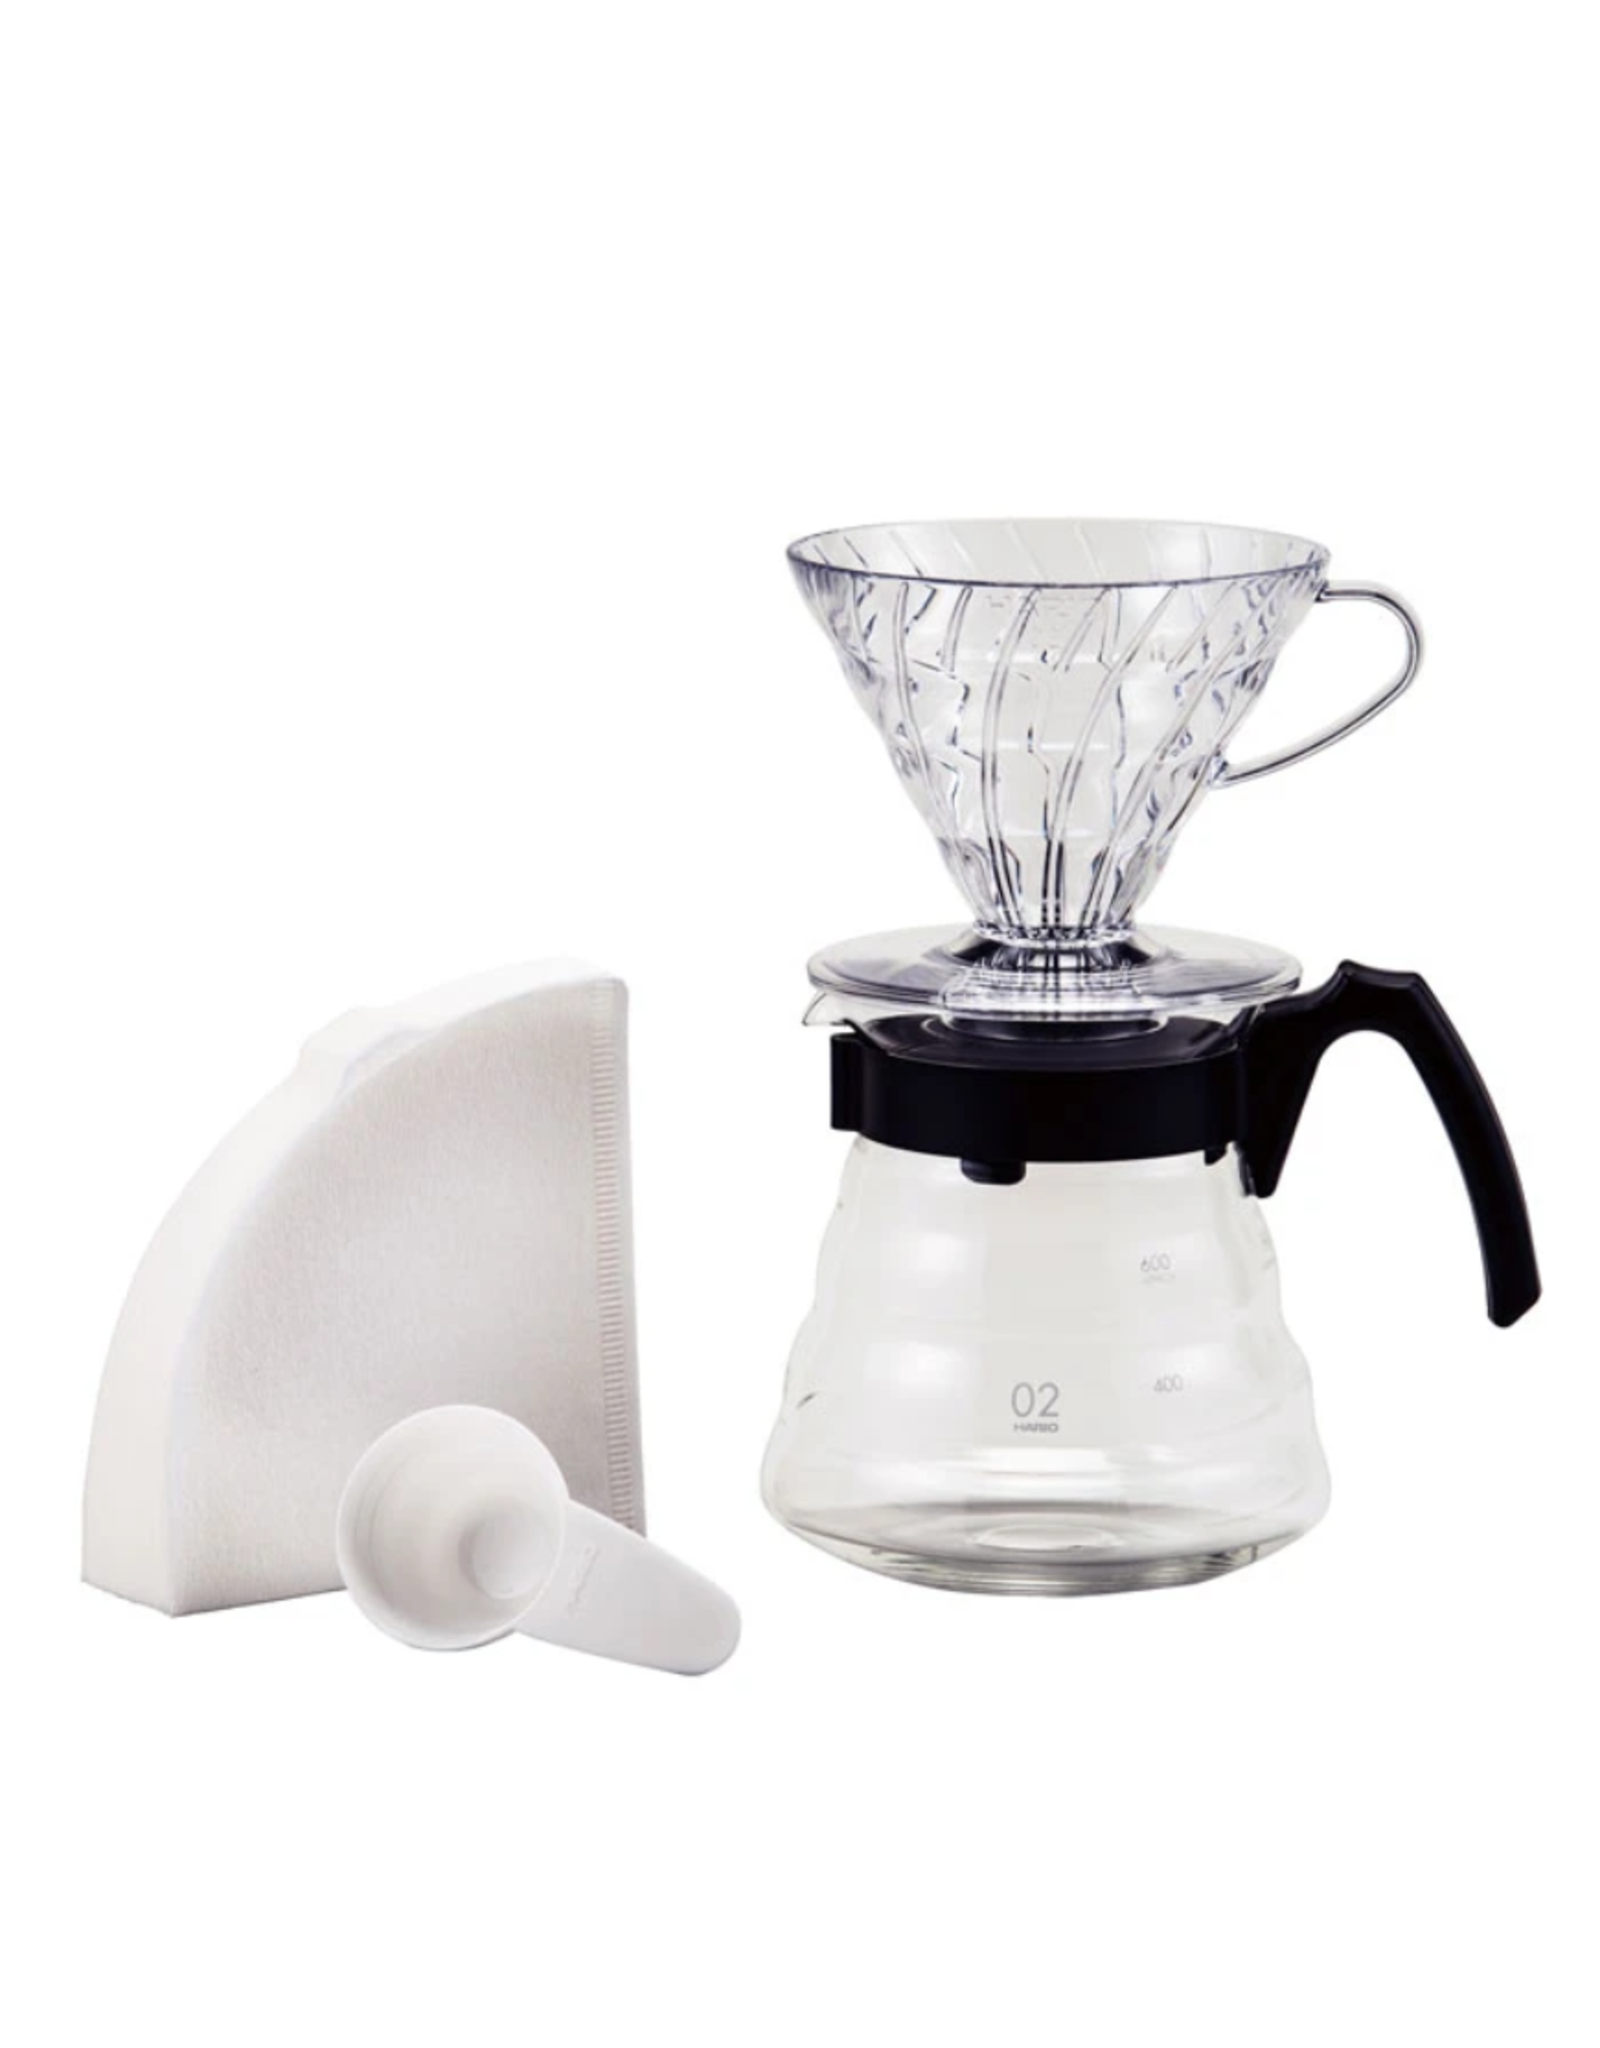 Hario Hario Craft Coffee Maker (Pourover Kit)